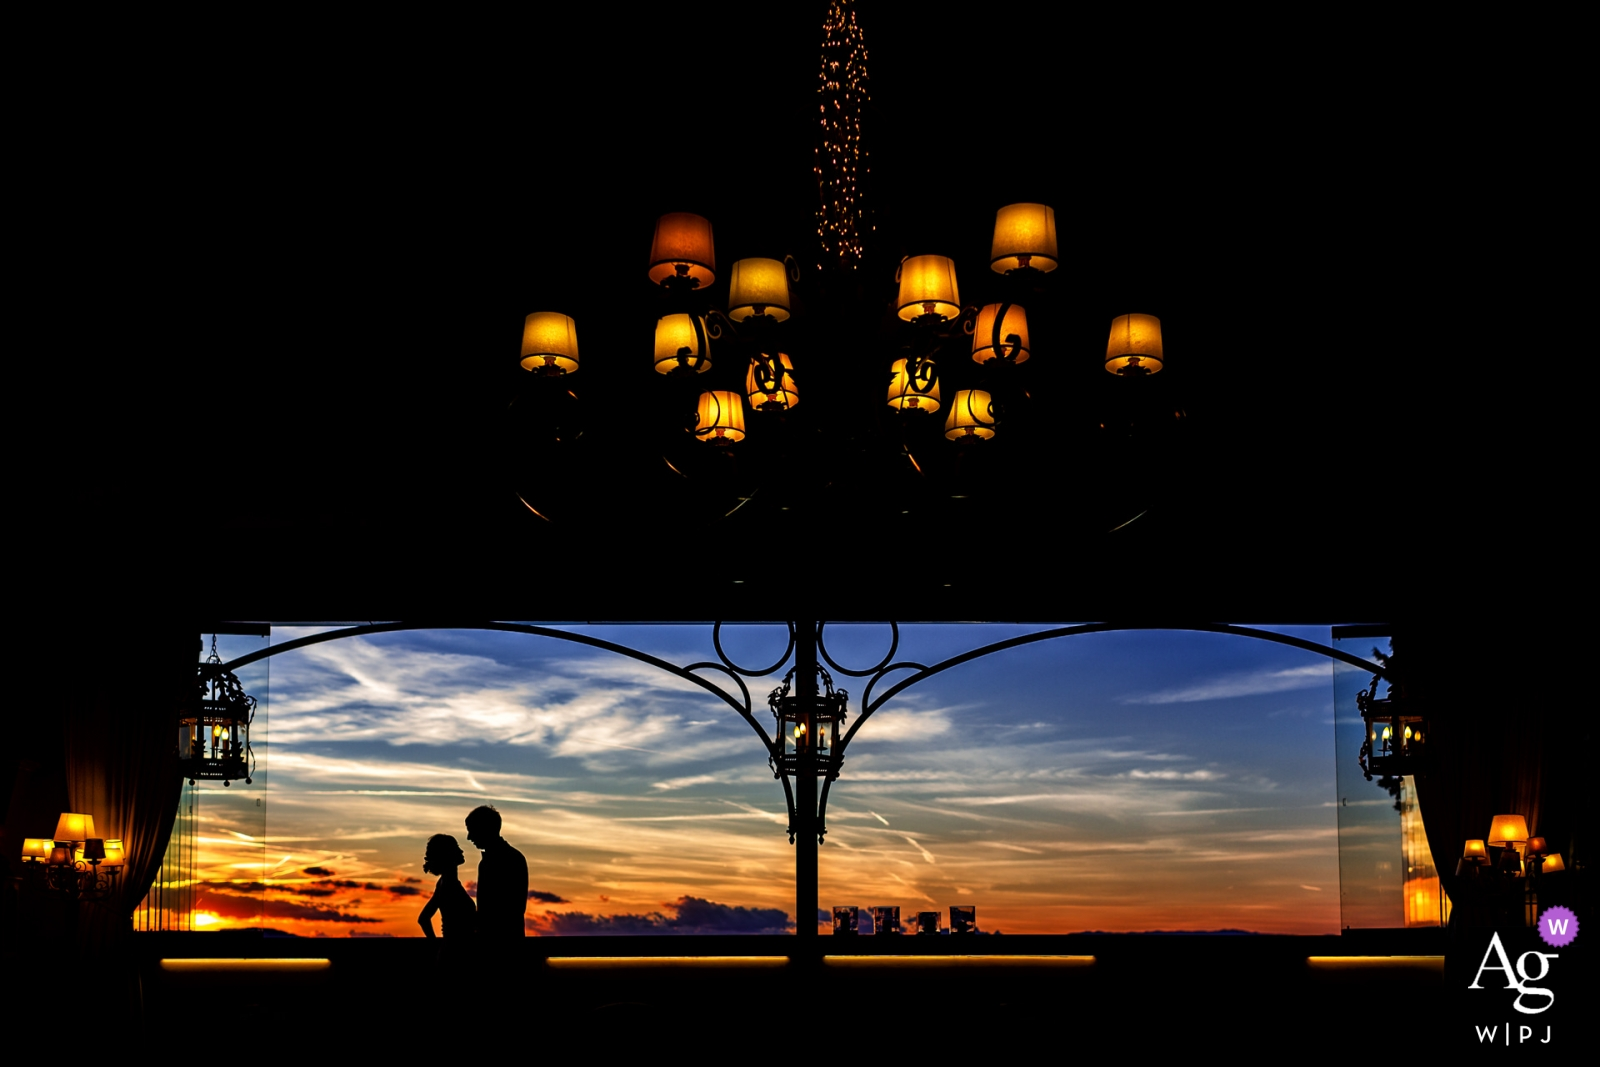 Tuscany wedding photograph | capturing wedding portraits of bride and groom indoors at sunset